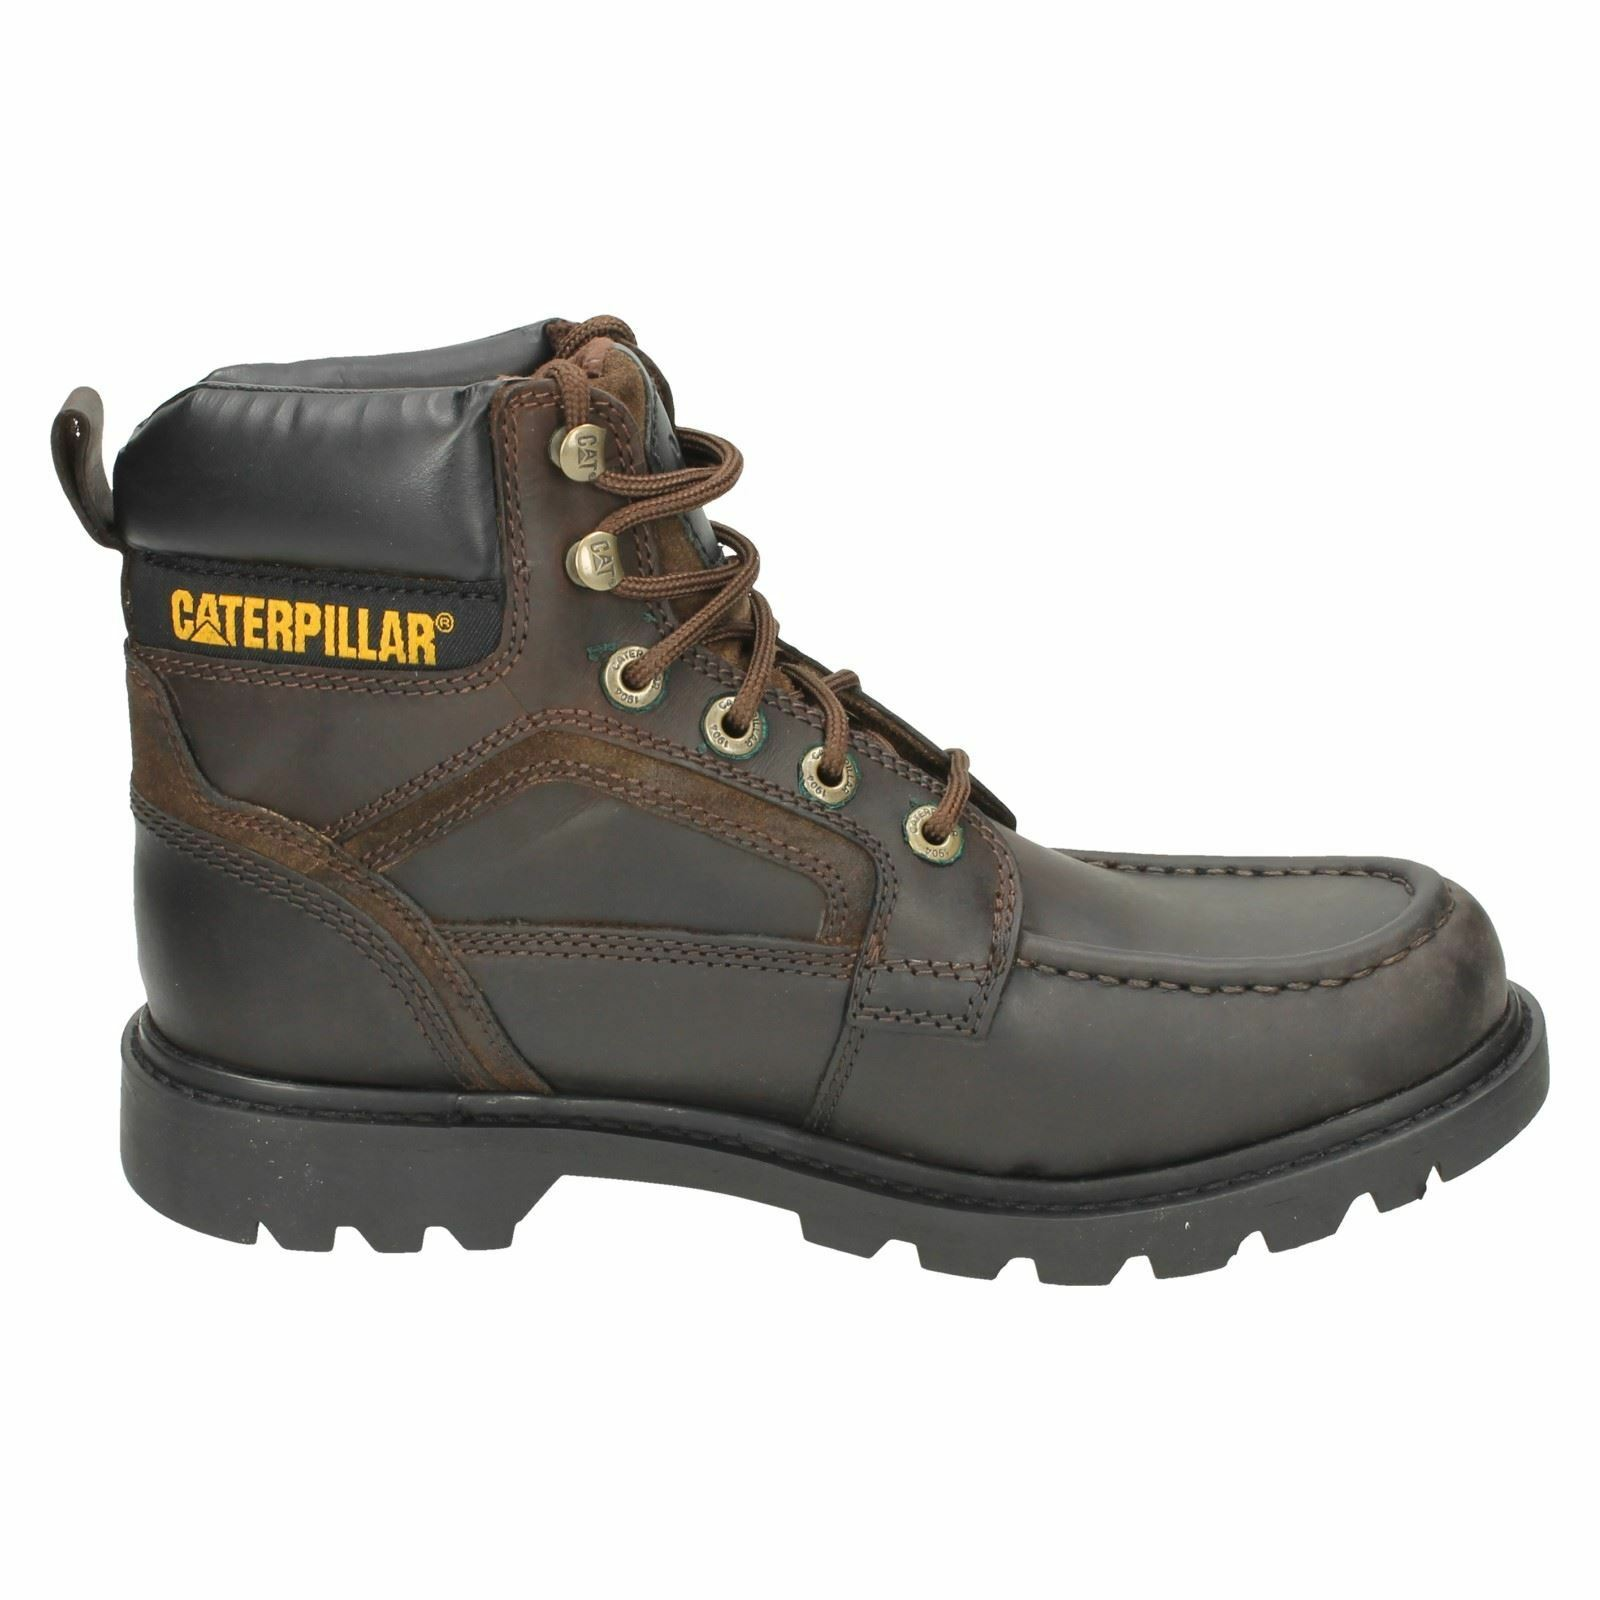 Men's TRANSPOSE boots Brown leather lace up boots  by CATERPILLAR Price £59.99